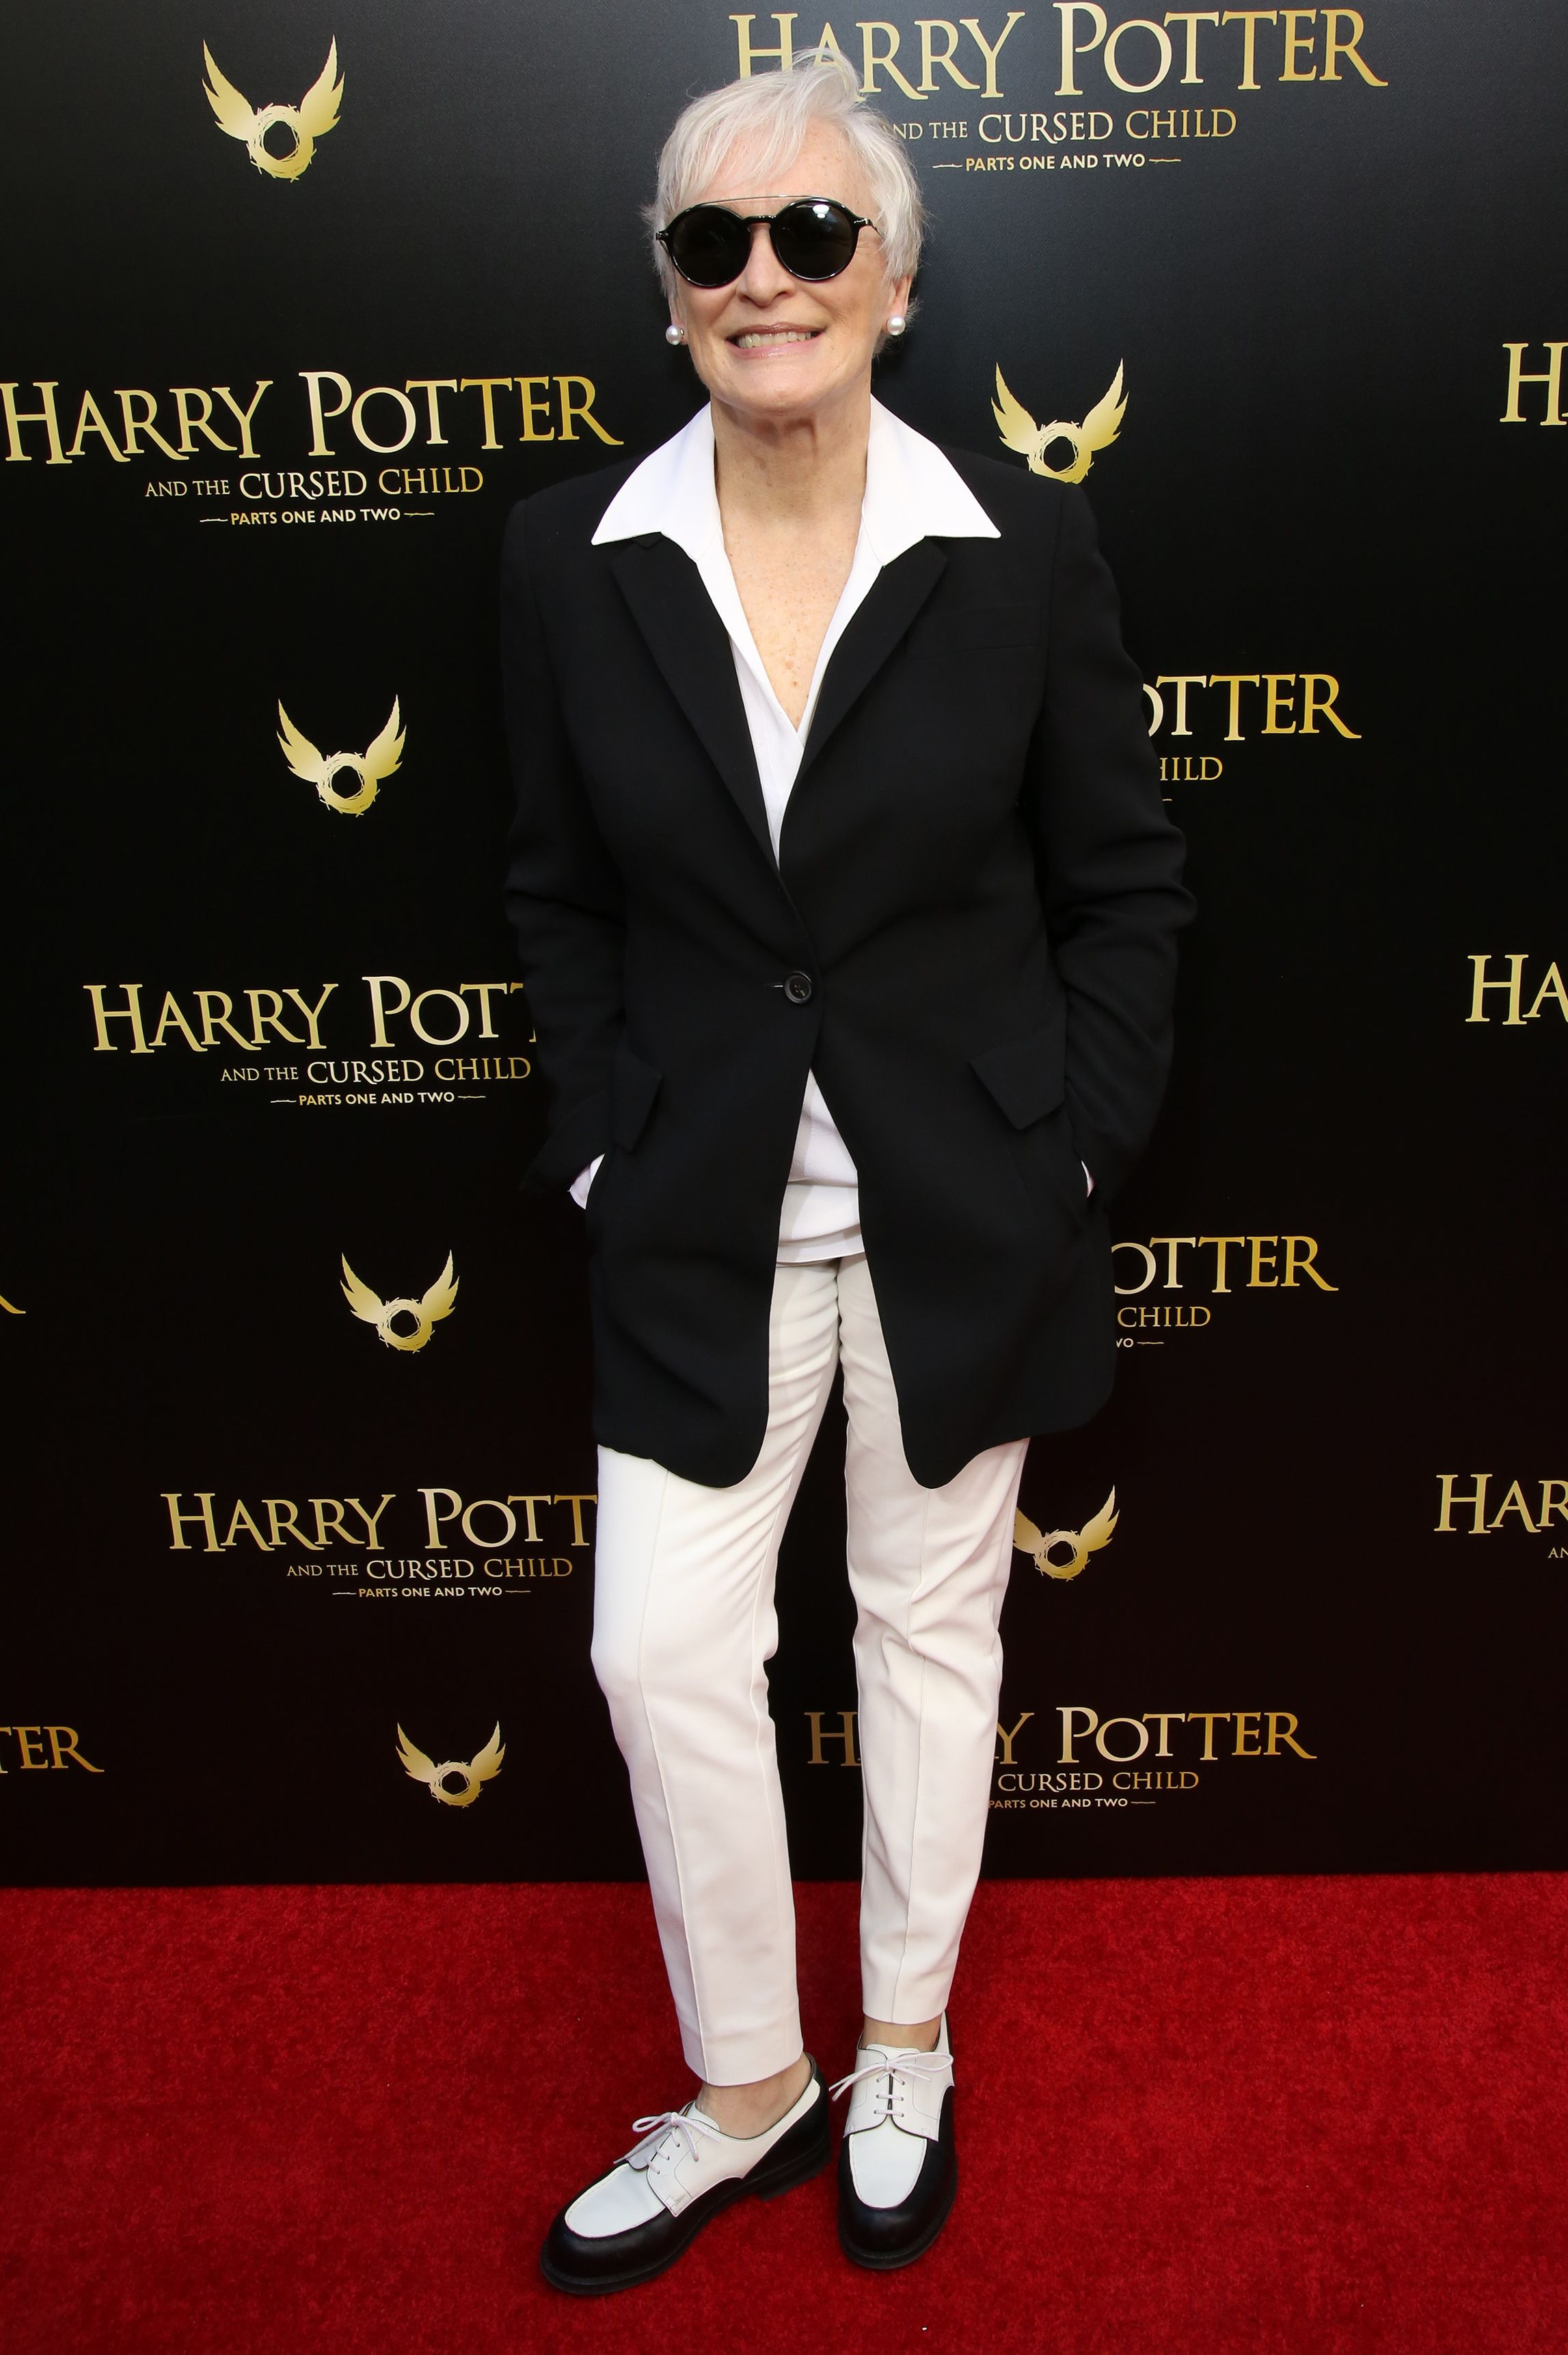 Close pulled together an effortlessly cool look of white trousers, a collared shirt, an oversized blazer, oxford shoes, and rounded sunglasses for Broadway's opening performance of Harry Potter and the Cursed Child Parts One and Two.